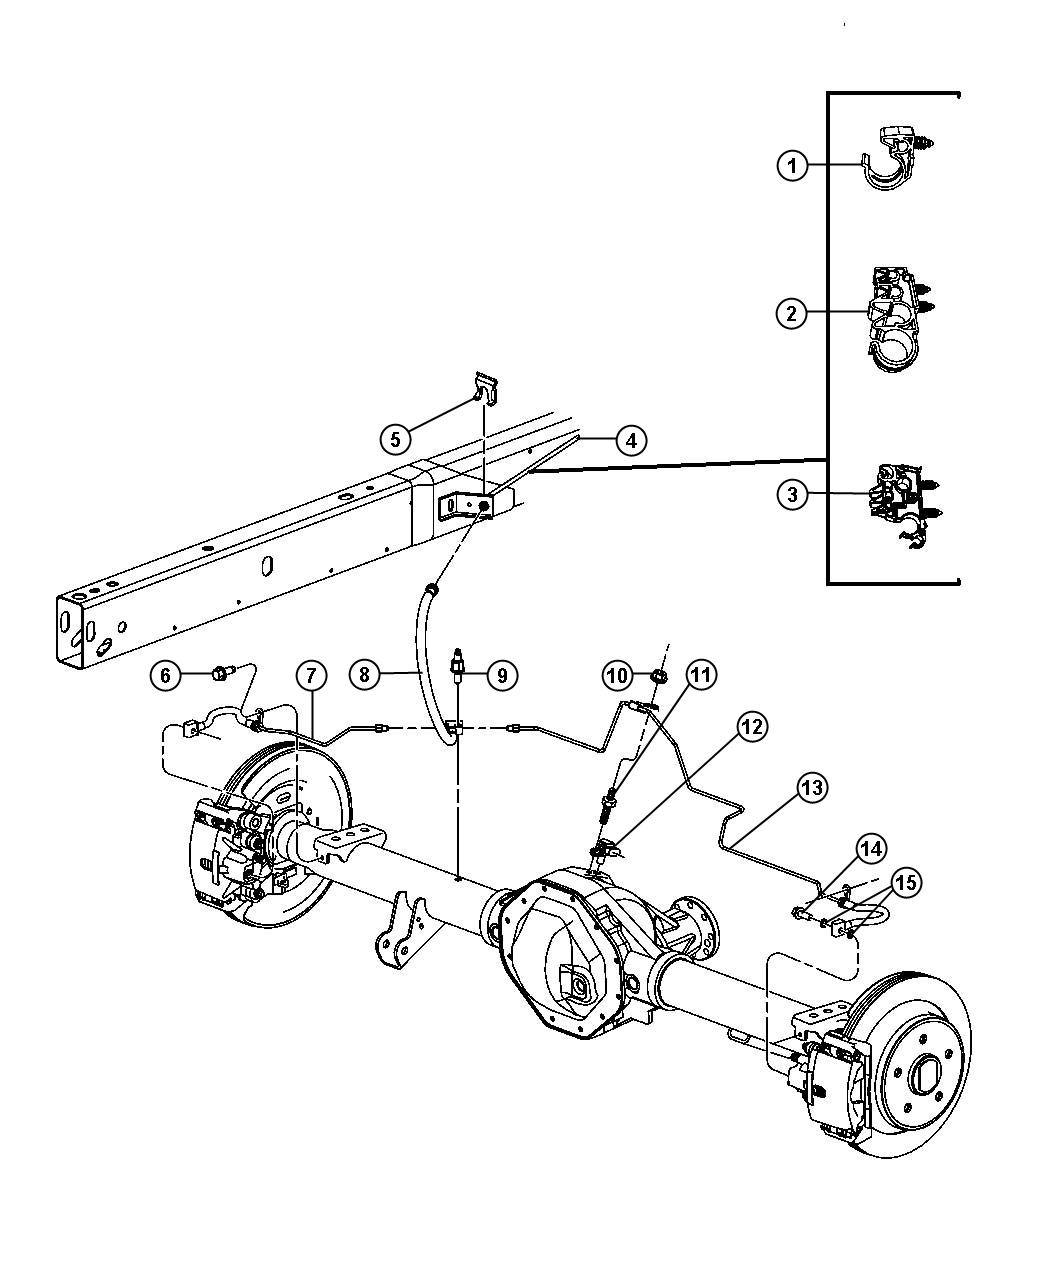 Brake Tubes and Hoses,Rear and Chassis